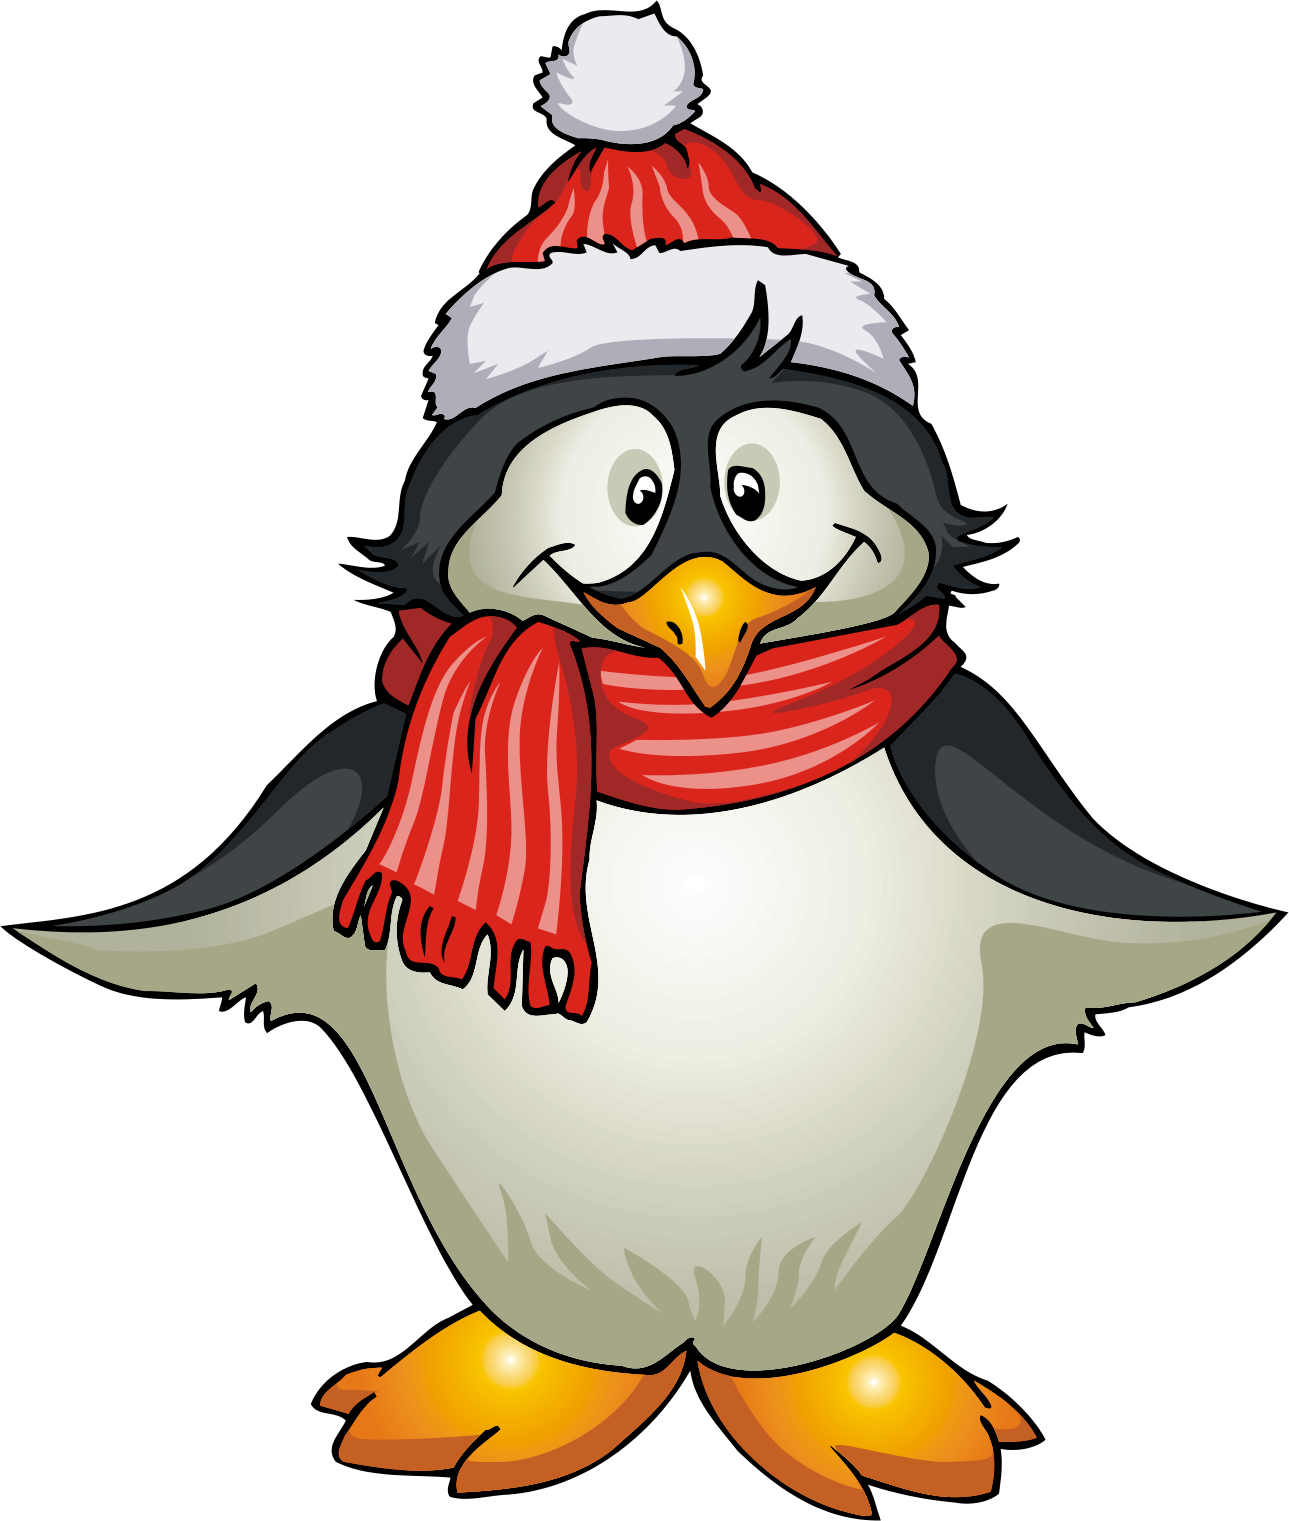 1289x1521 Winter clip art for kids clipart 5